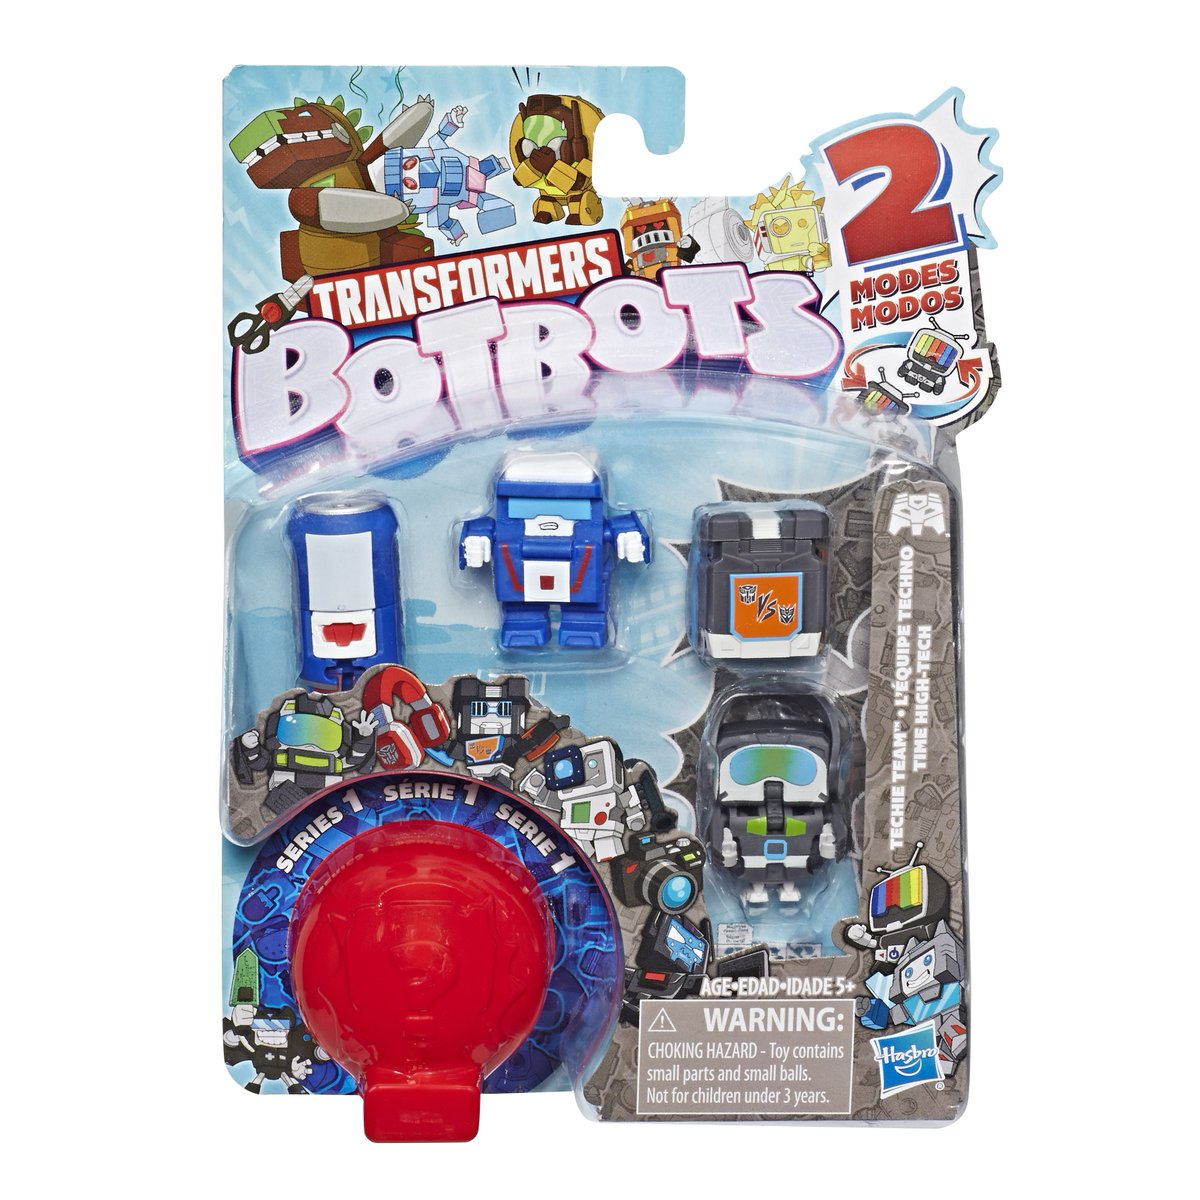 Toys For Techies : First look at transformers botbots toys